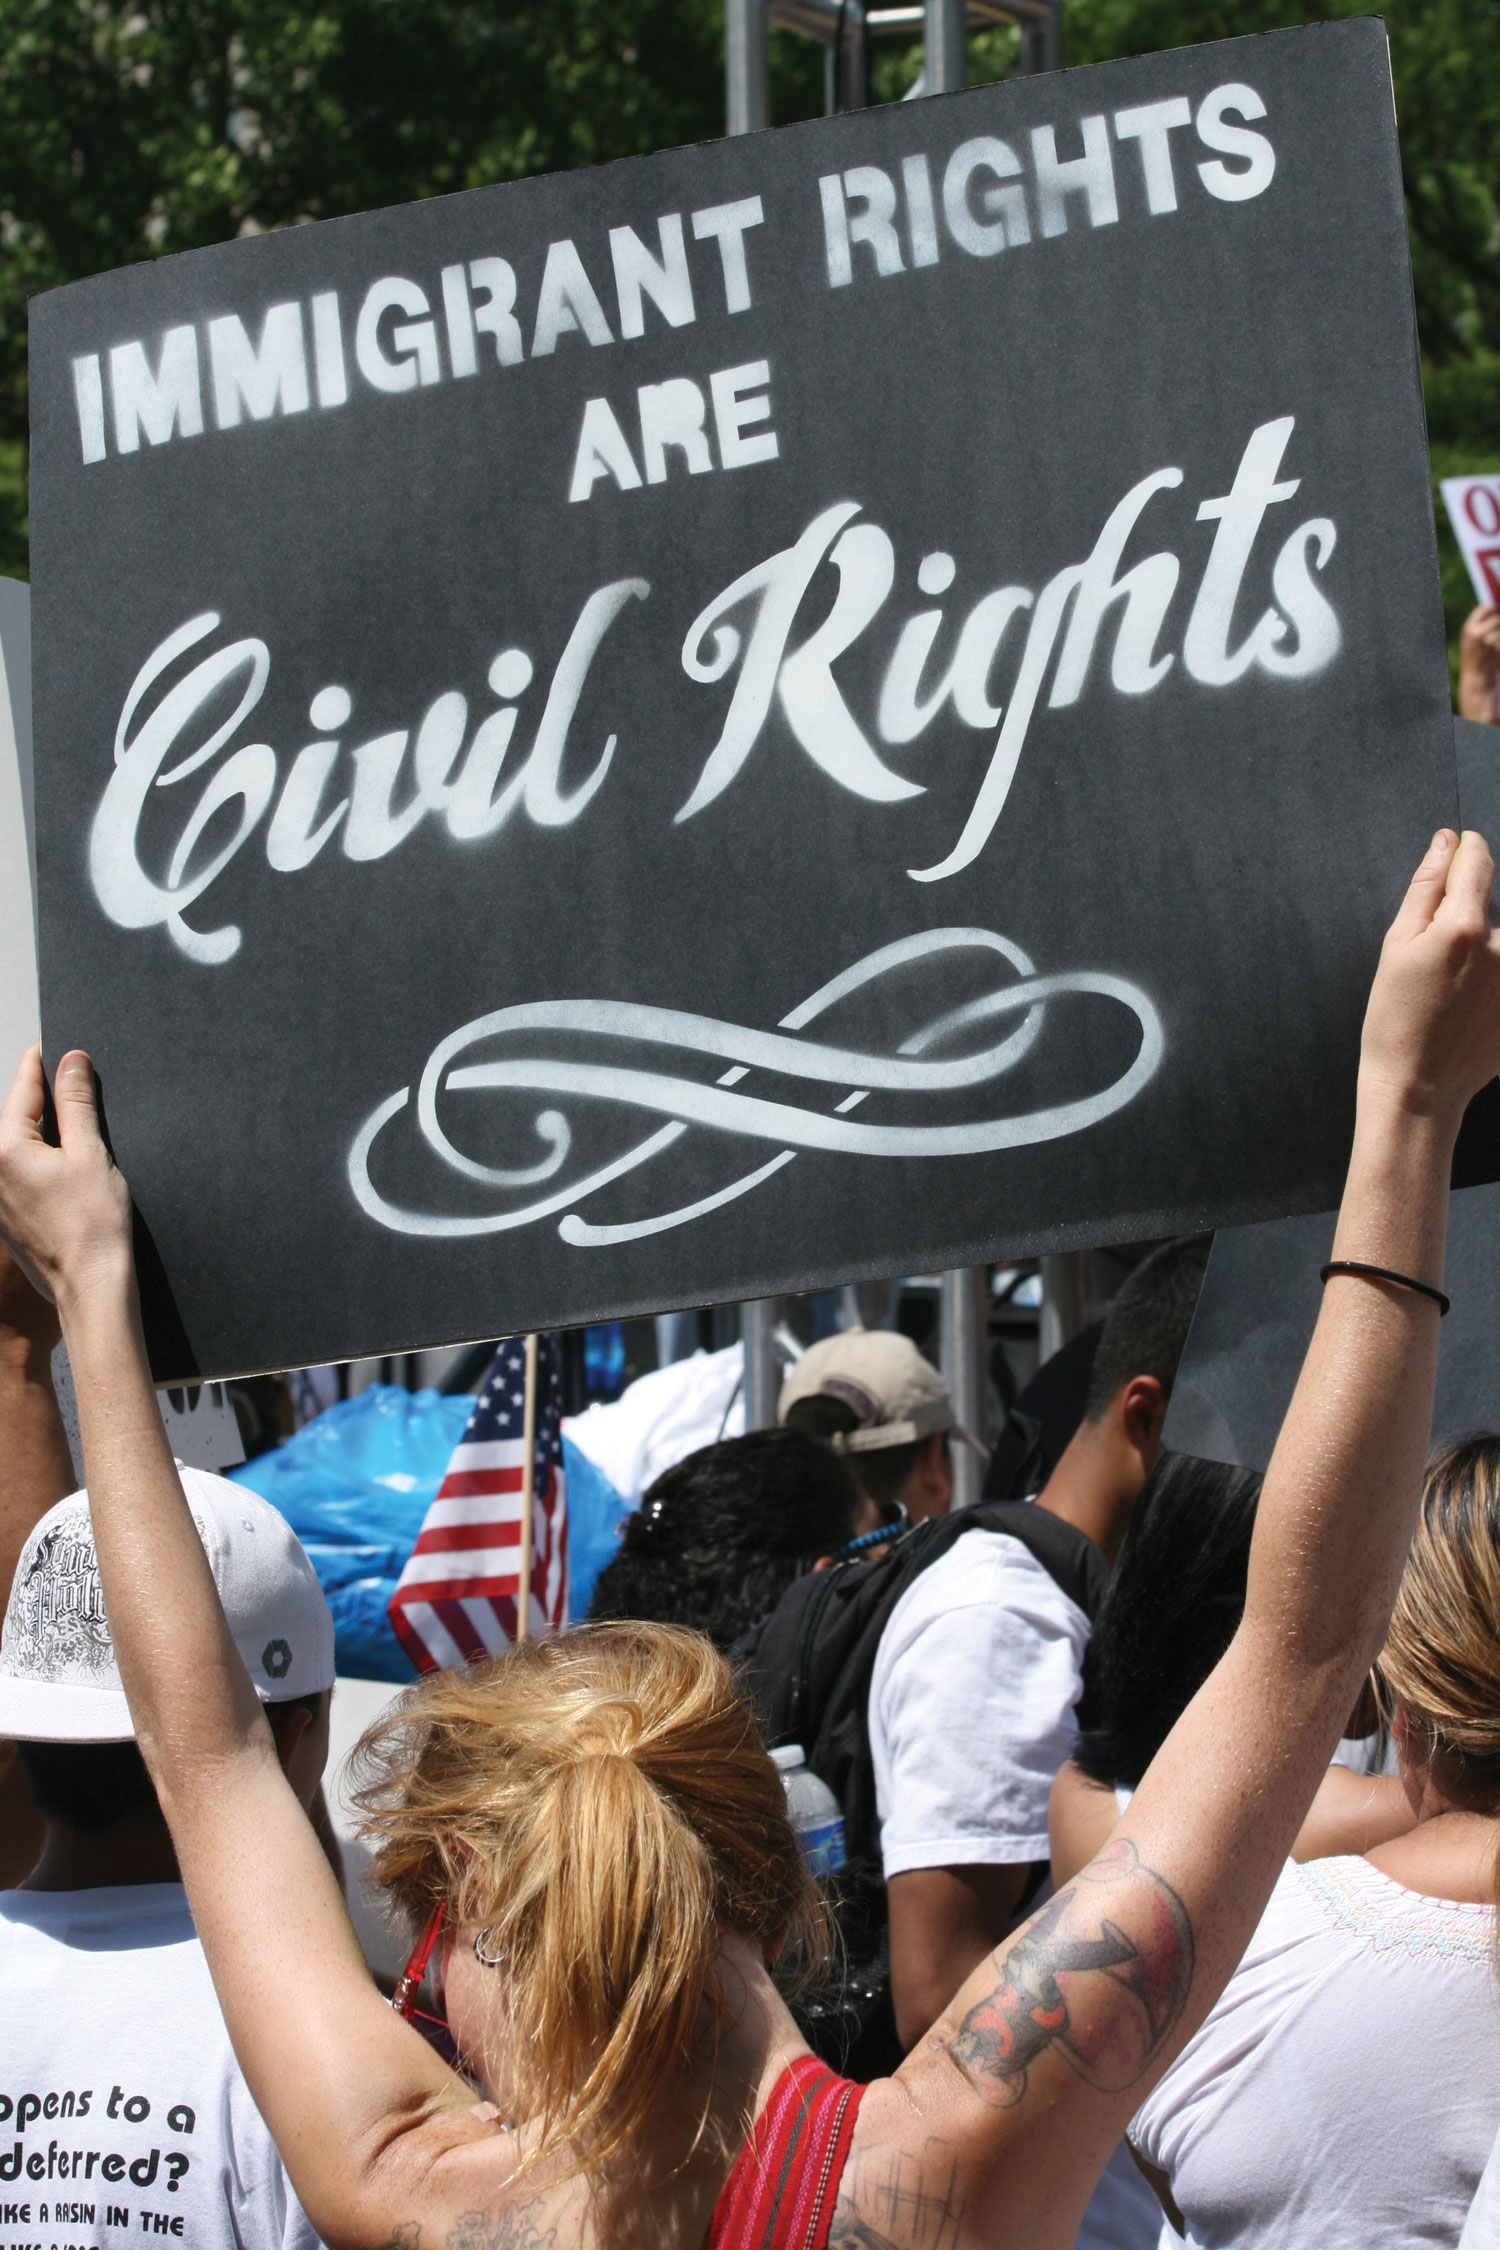 A protest of Immigration Reform. A woman holds up a sign